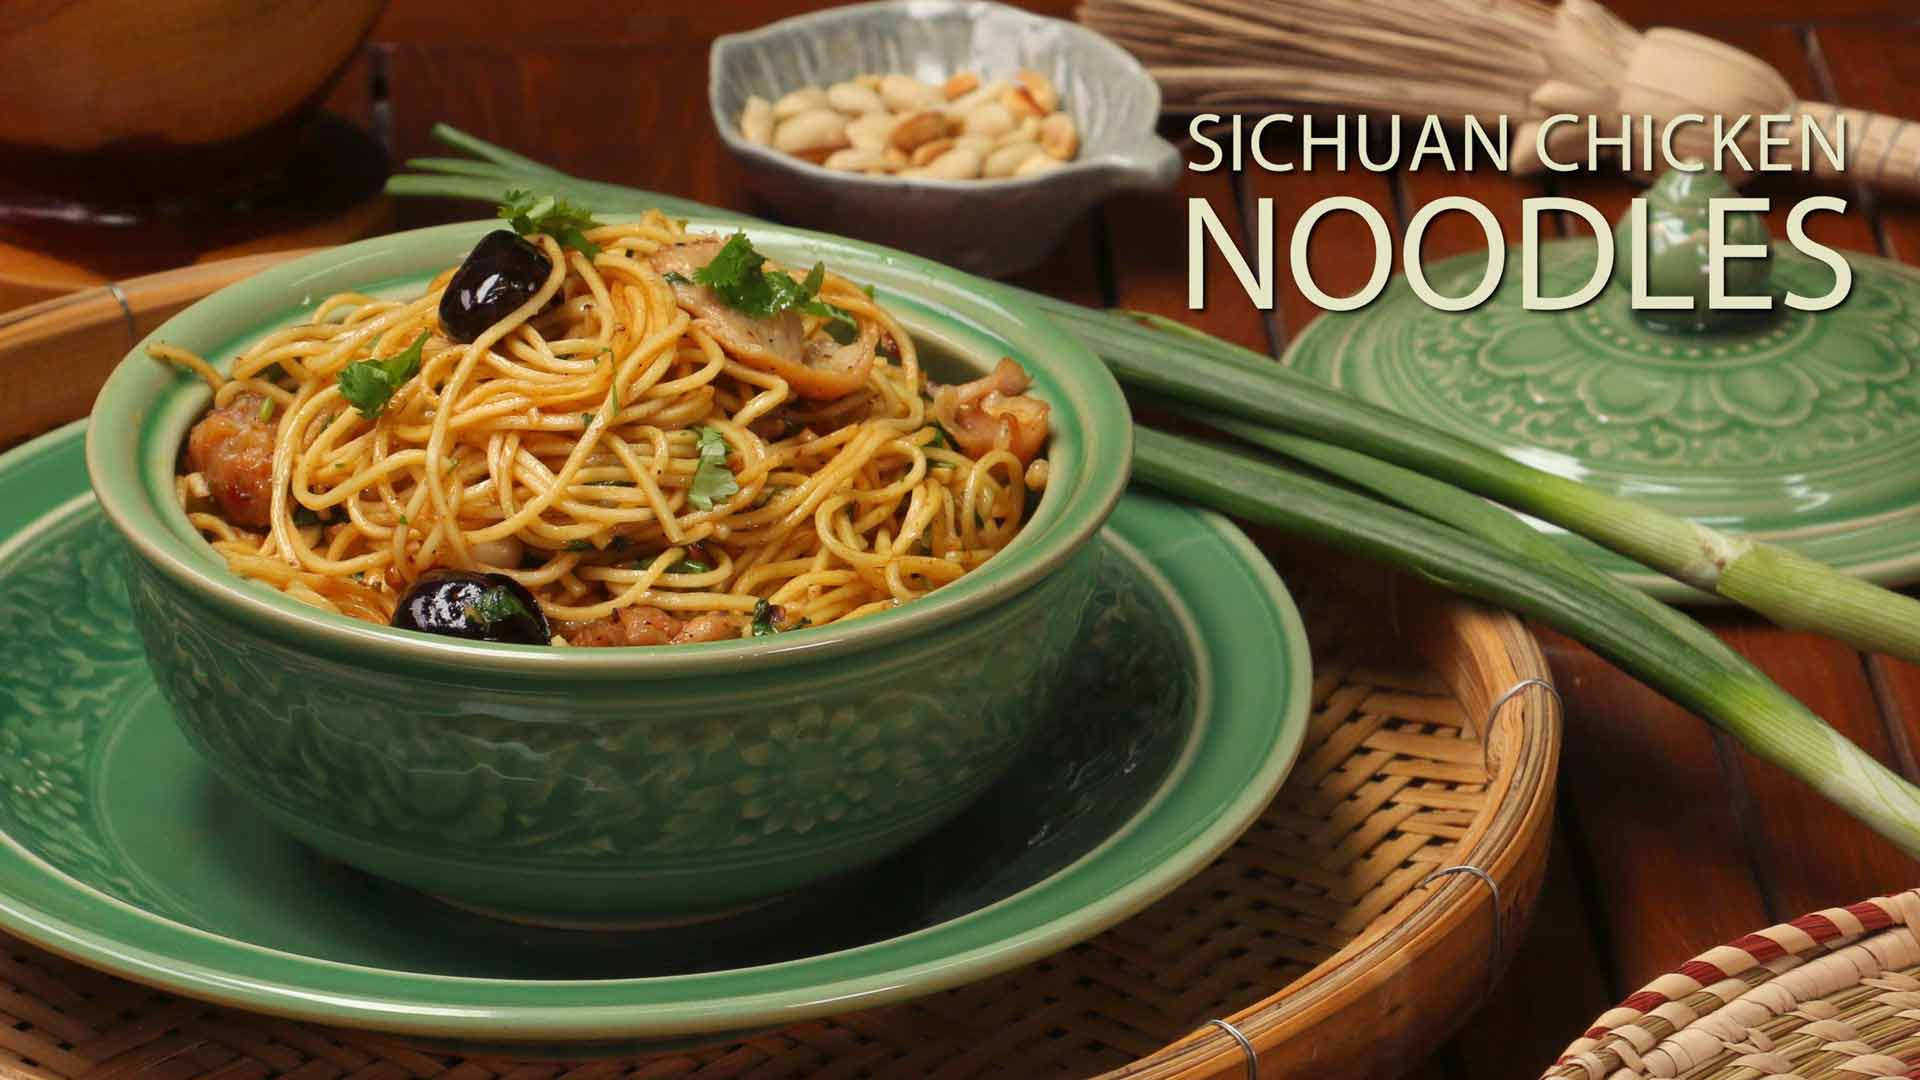 Sichuan Chicken Noodles Recipe | Easy Chicken Chowmein | Szechuan Chicken Garlic Noodles